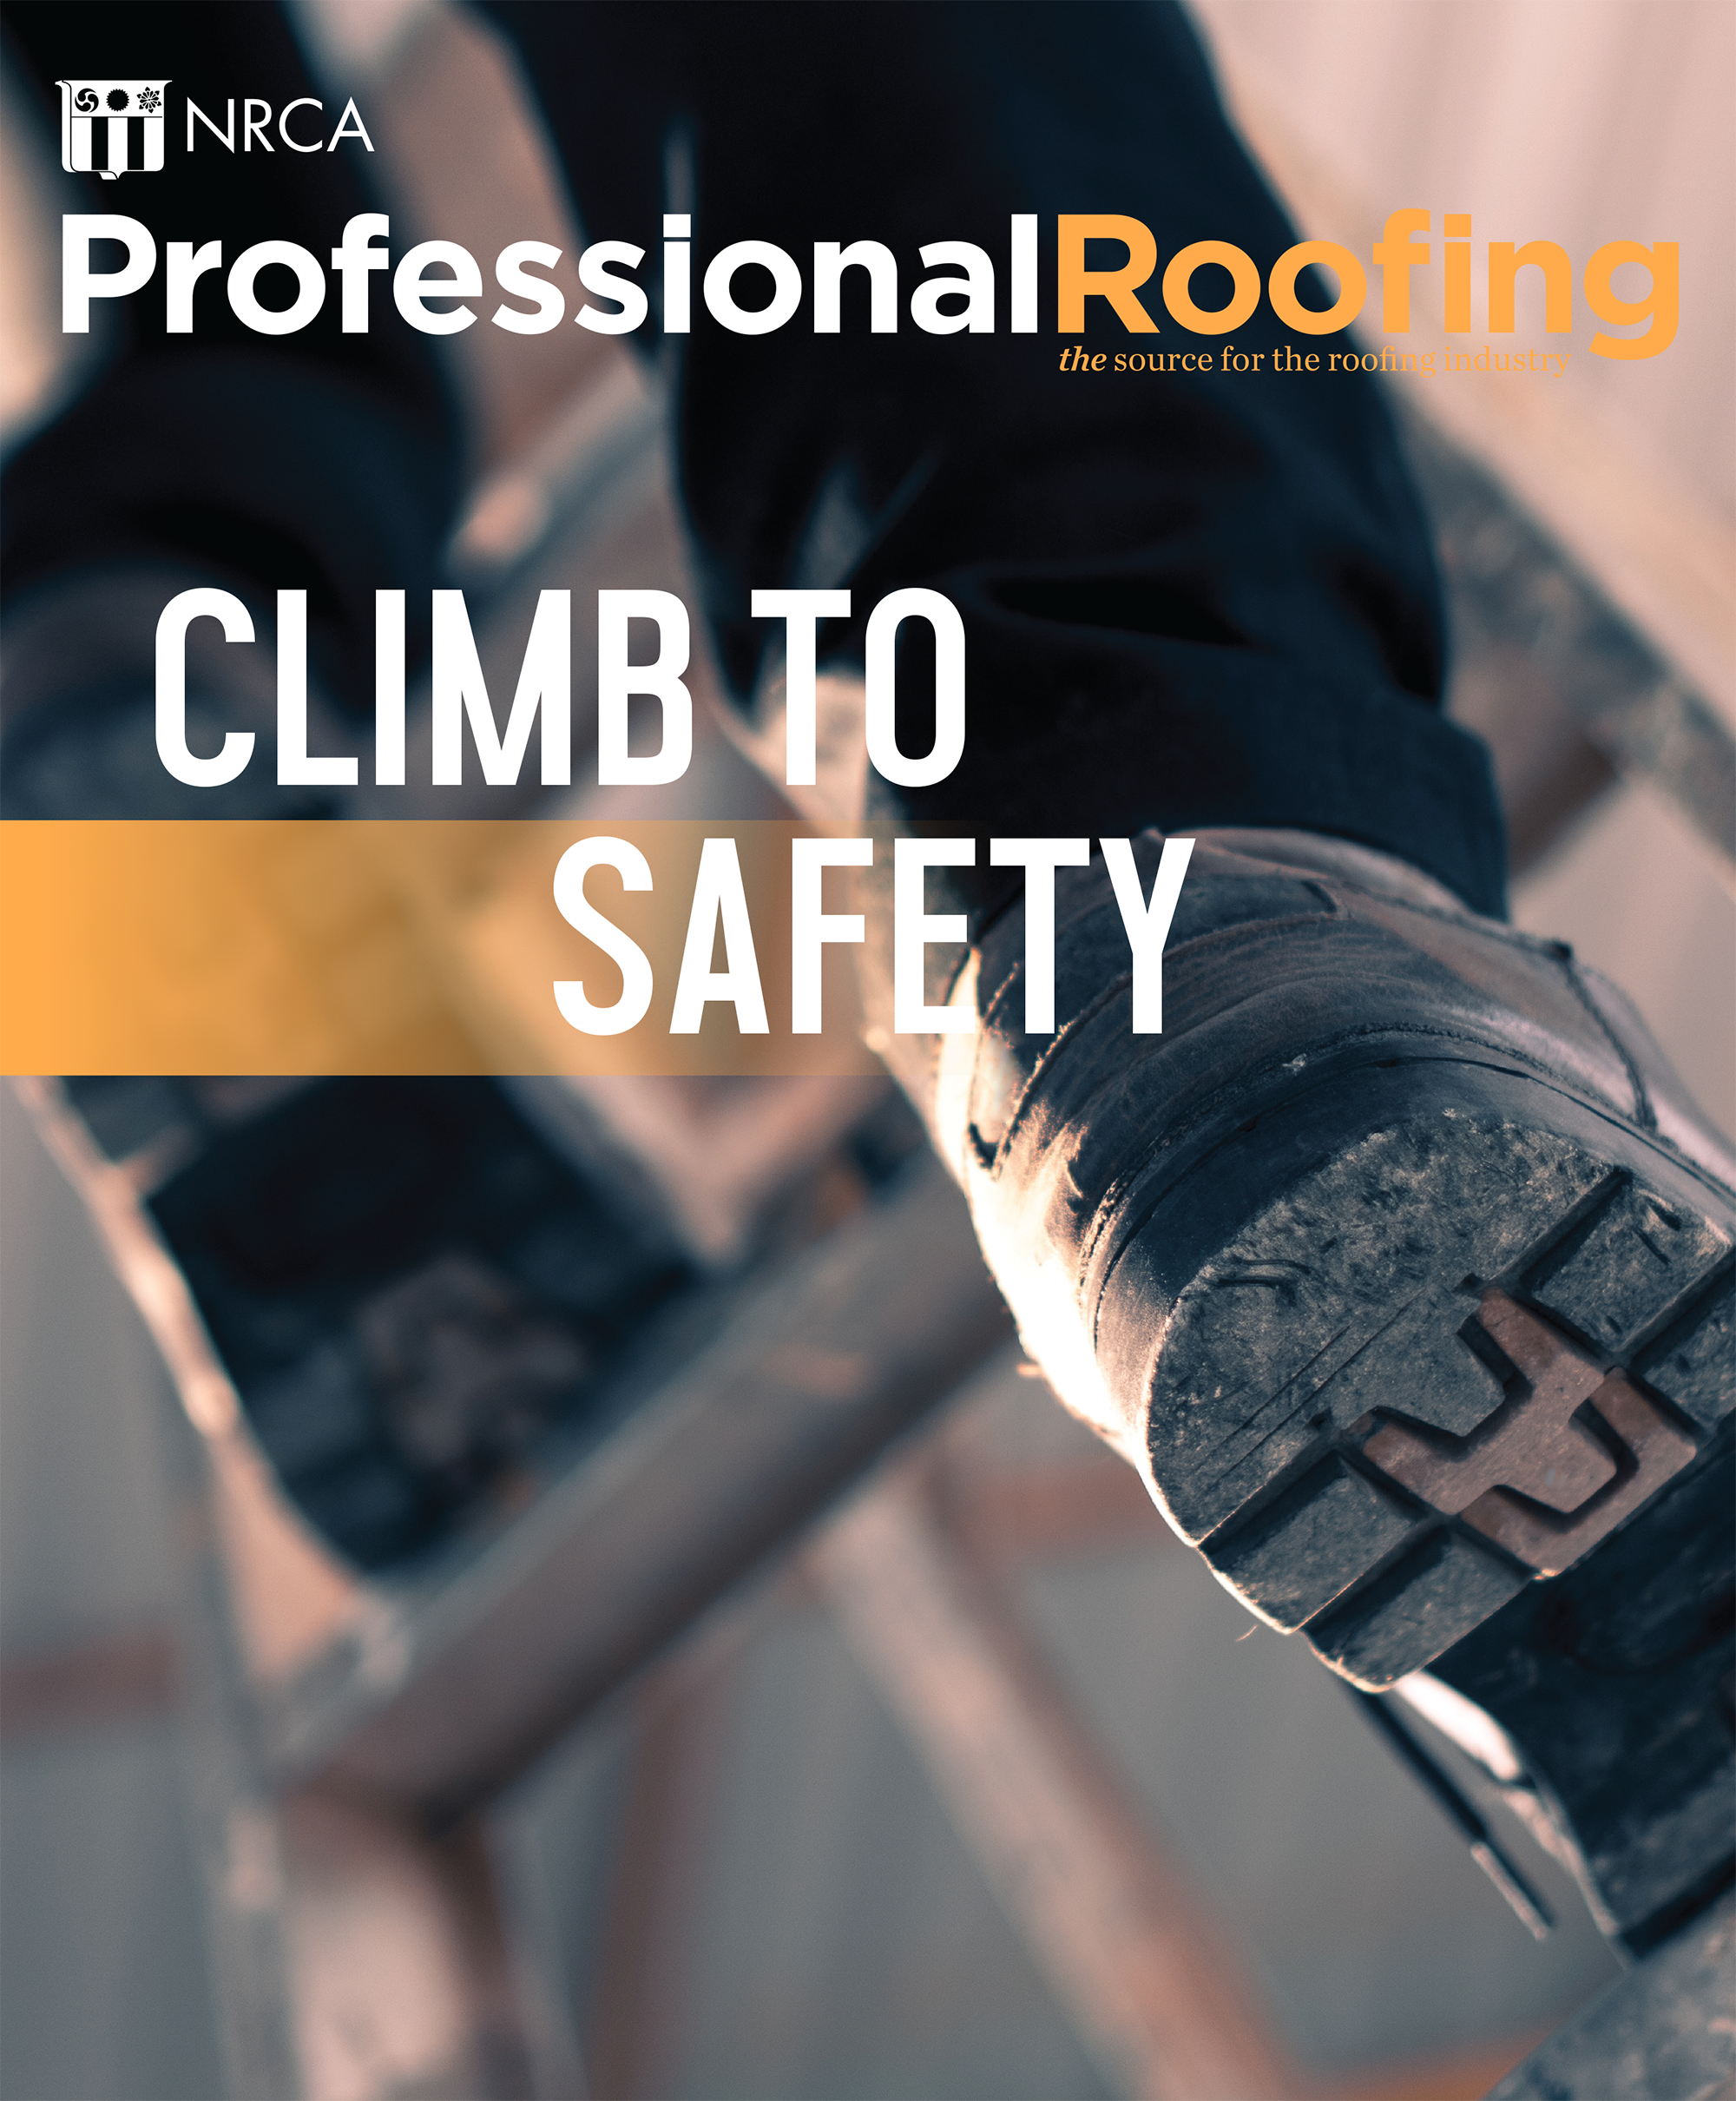 Professional Roofing Magazine 11/1/2019